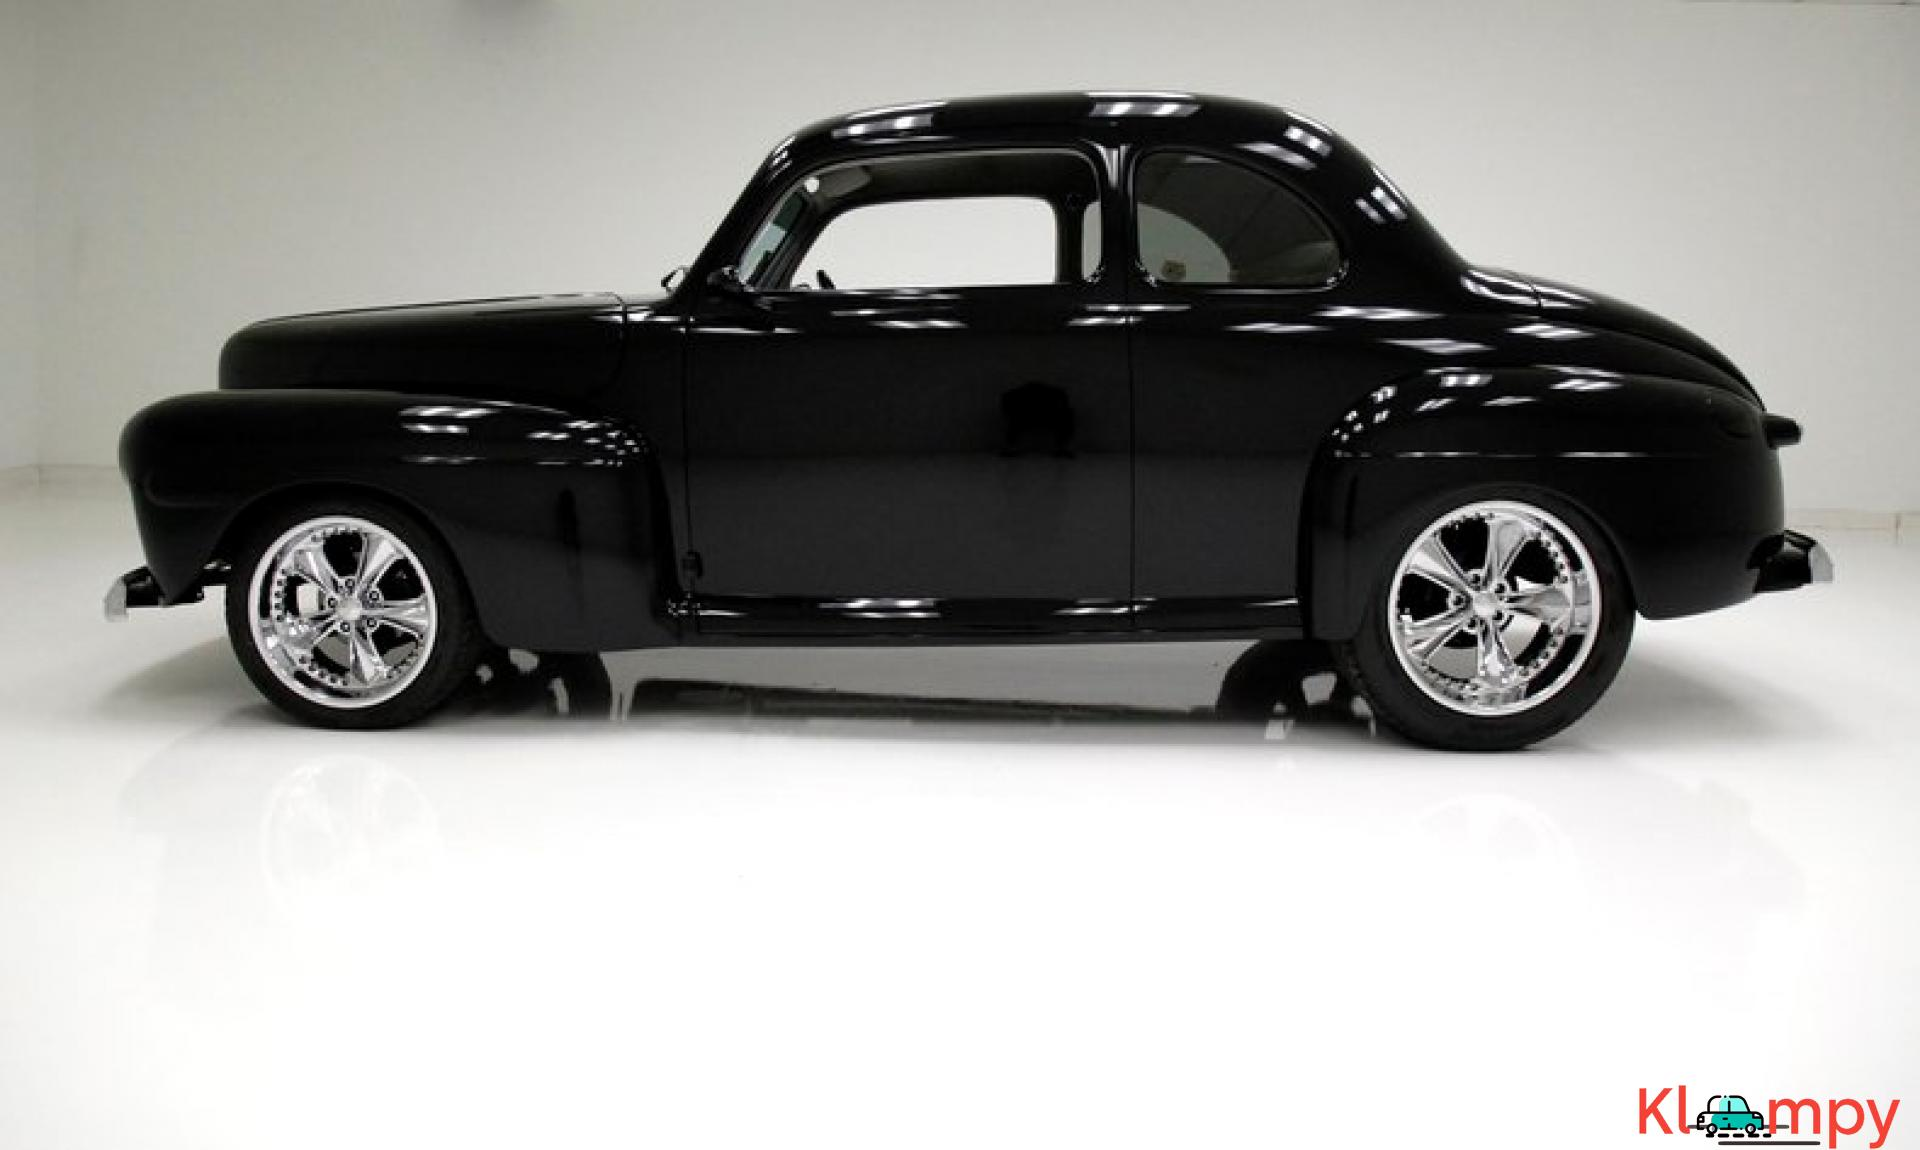 1948 Ford Super Deluxe Coupe 350 Powertrain - 2/20